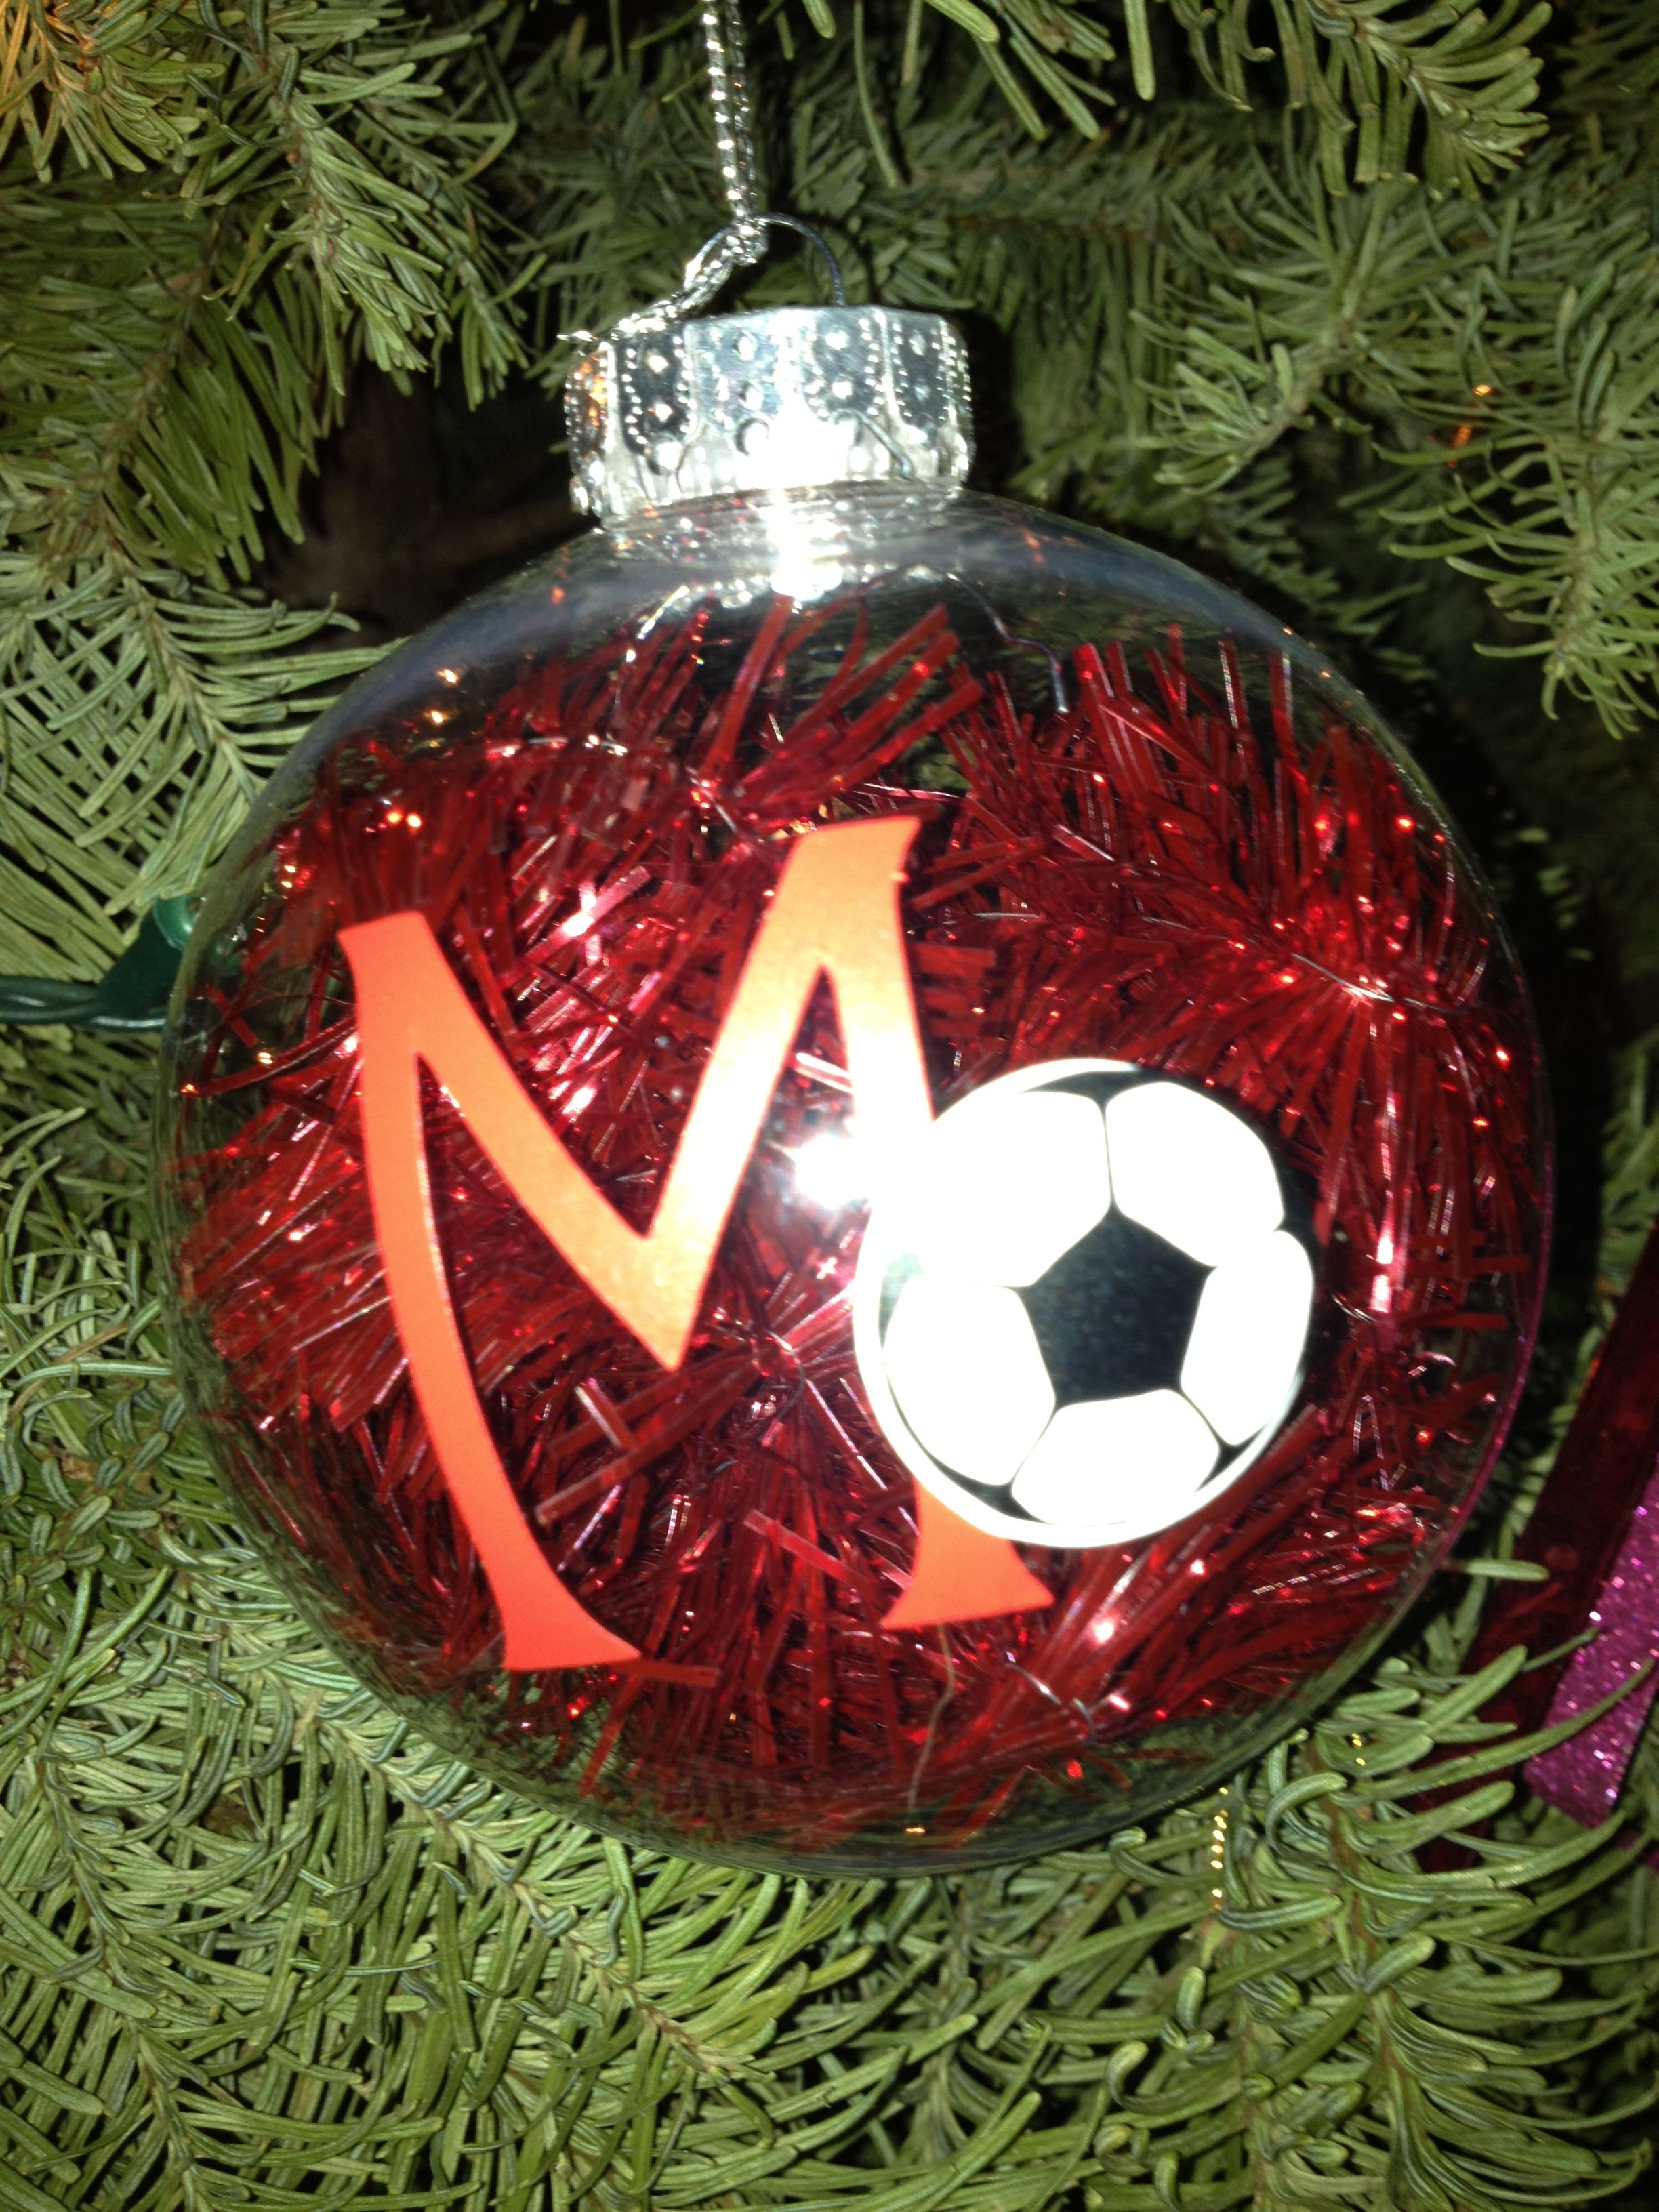 Soccer ornament | Craft Ideas | Pinterest | Ornaments, Soccer and ...